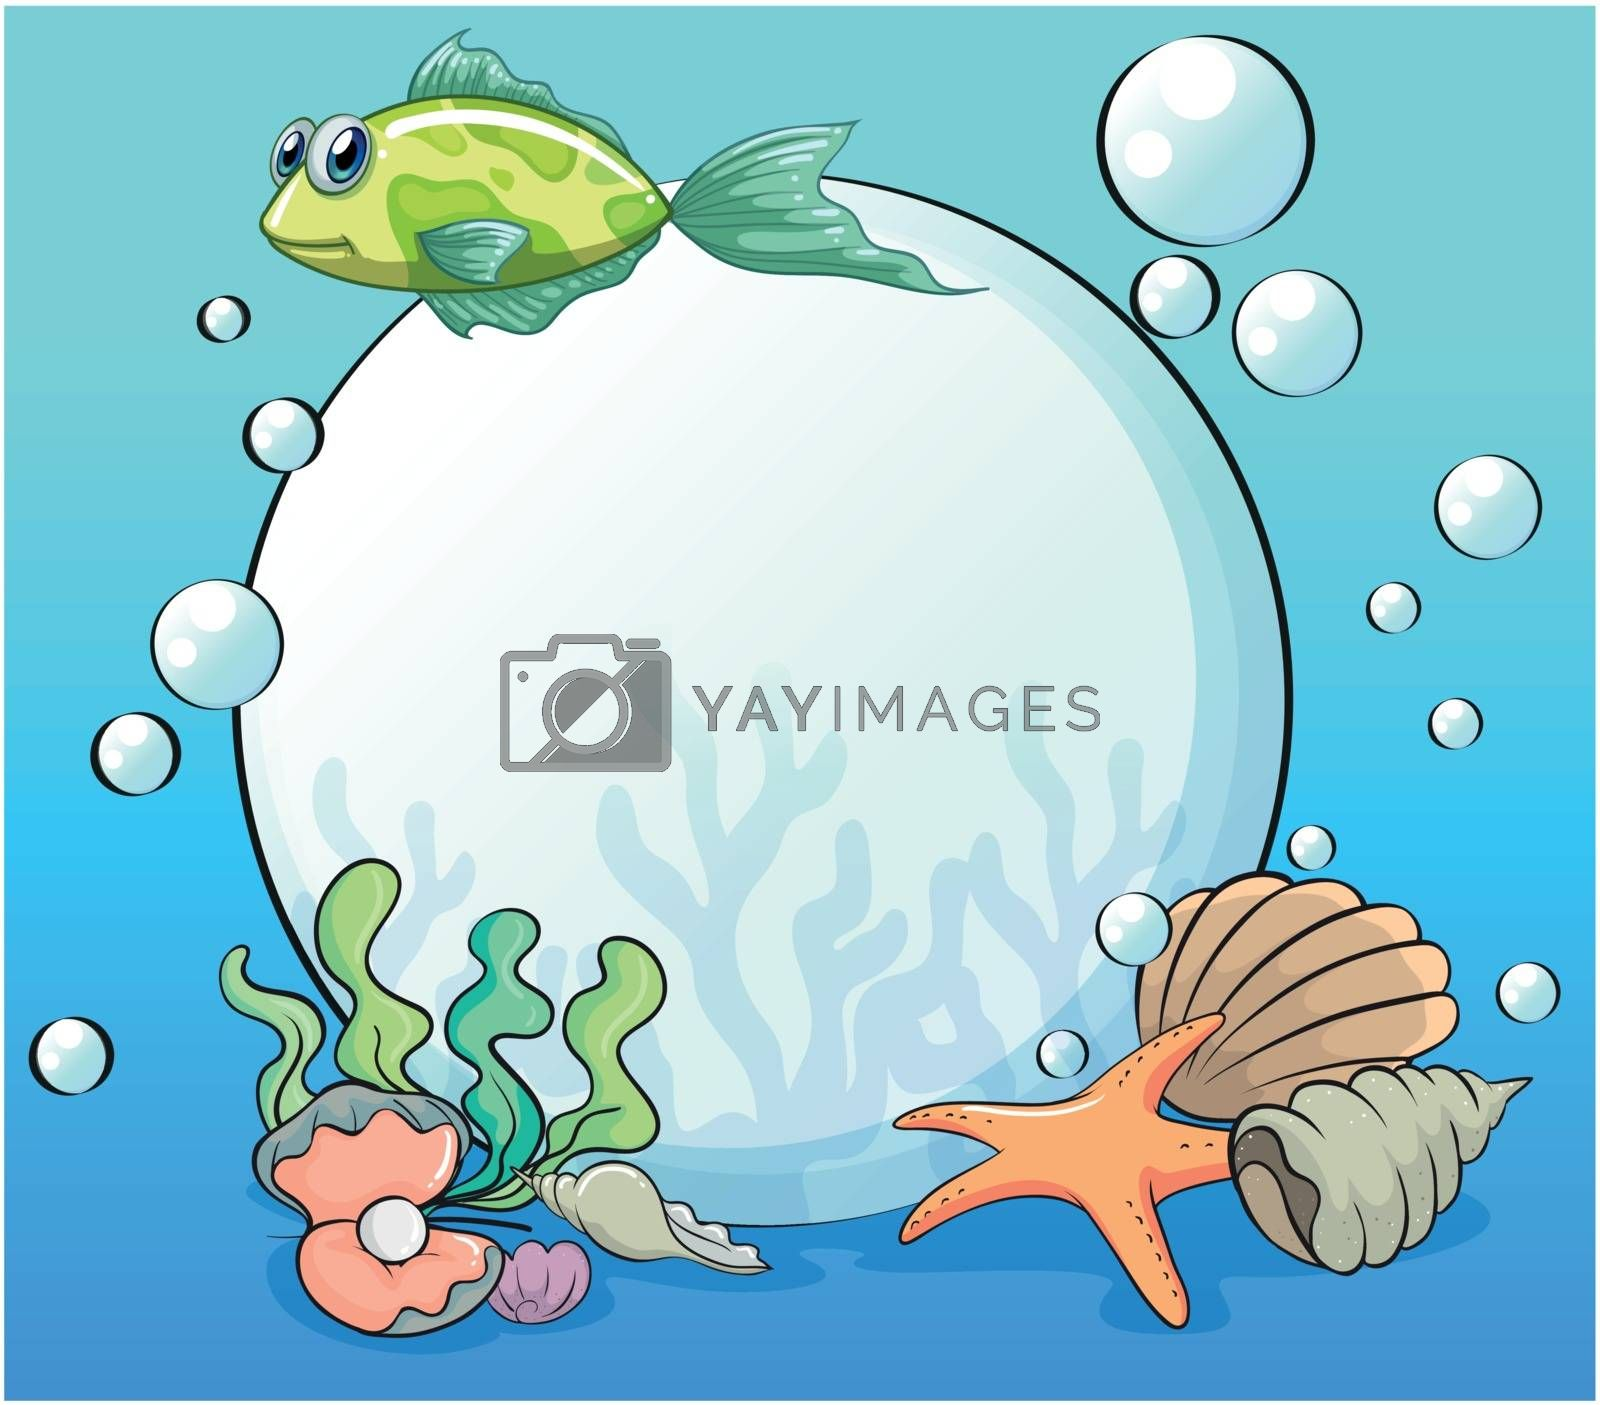 Illustration of a pearl in the ocean surrounded by sea creatures